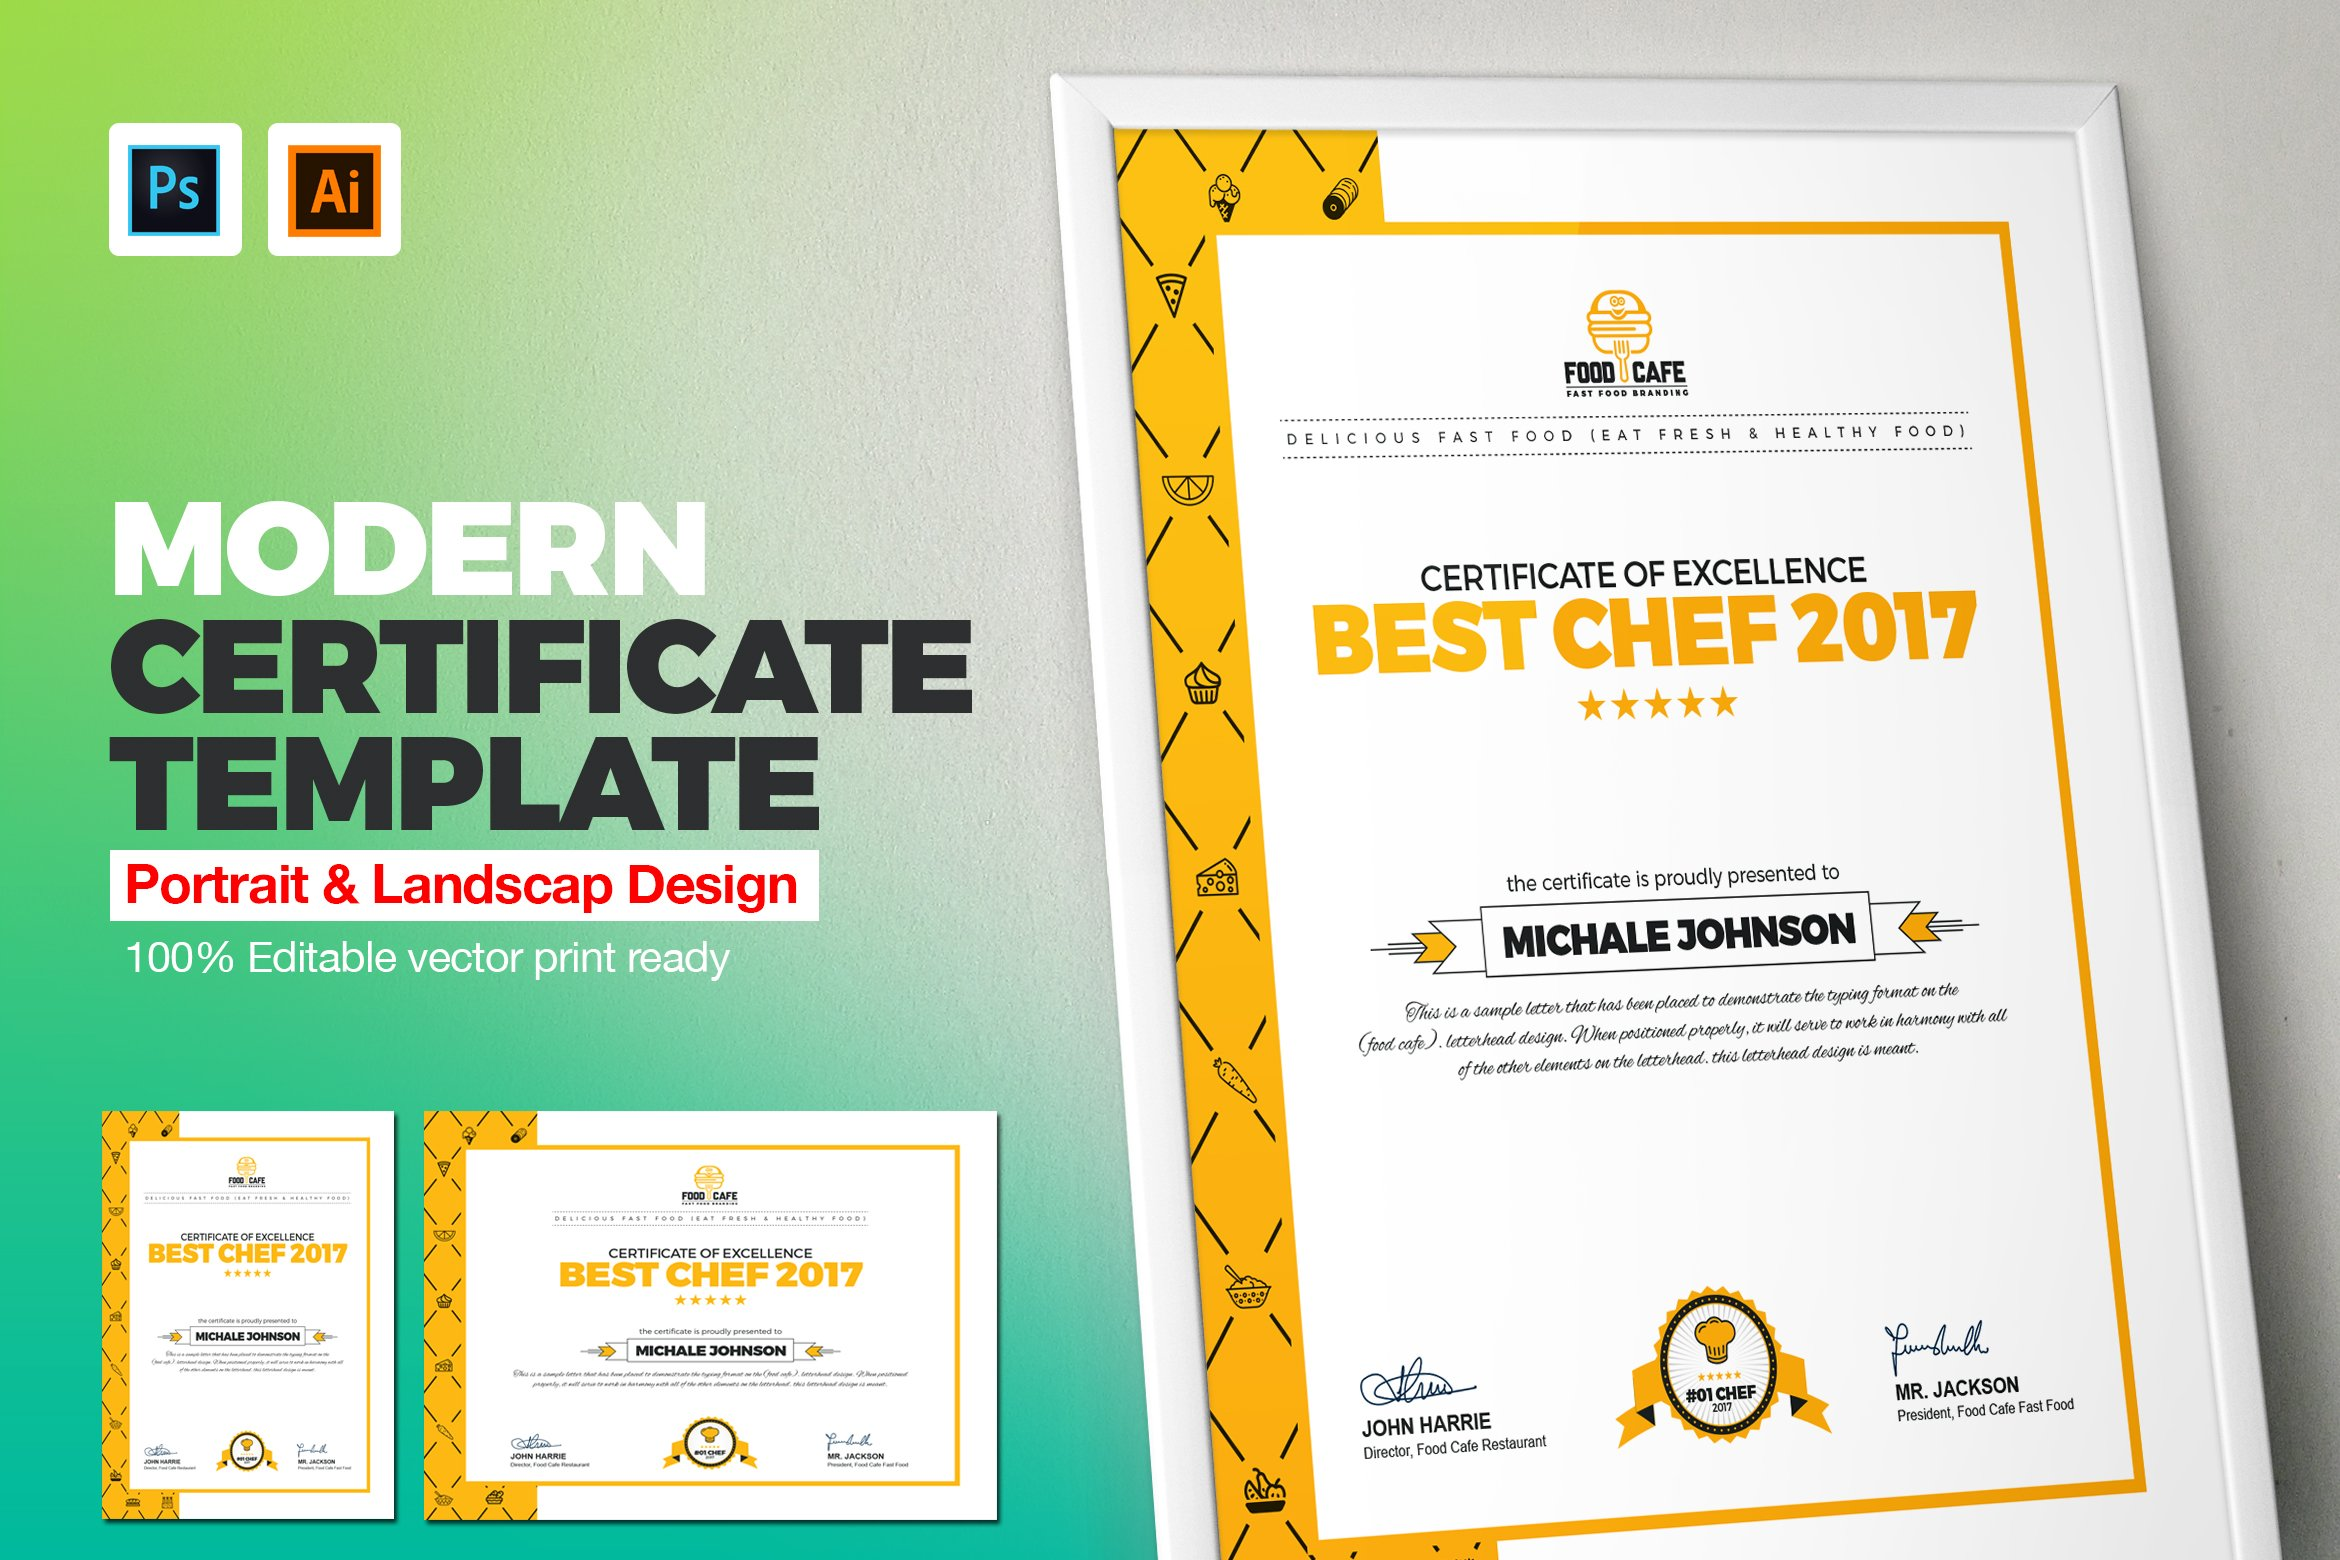 Modern Certificate Template Stationery Templates Creative Market